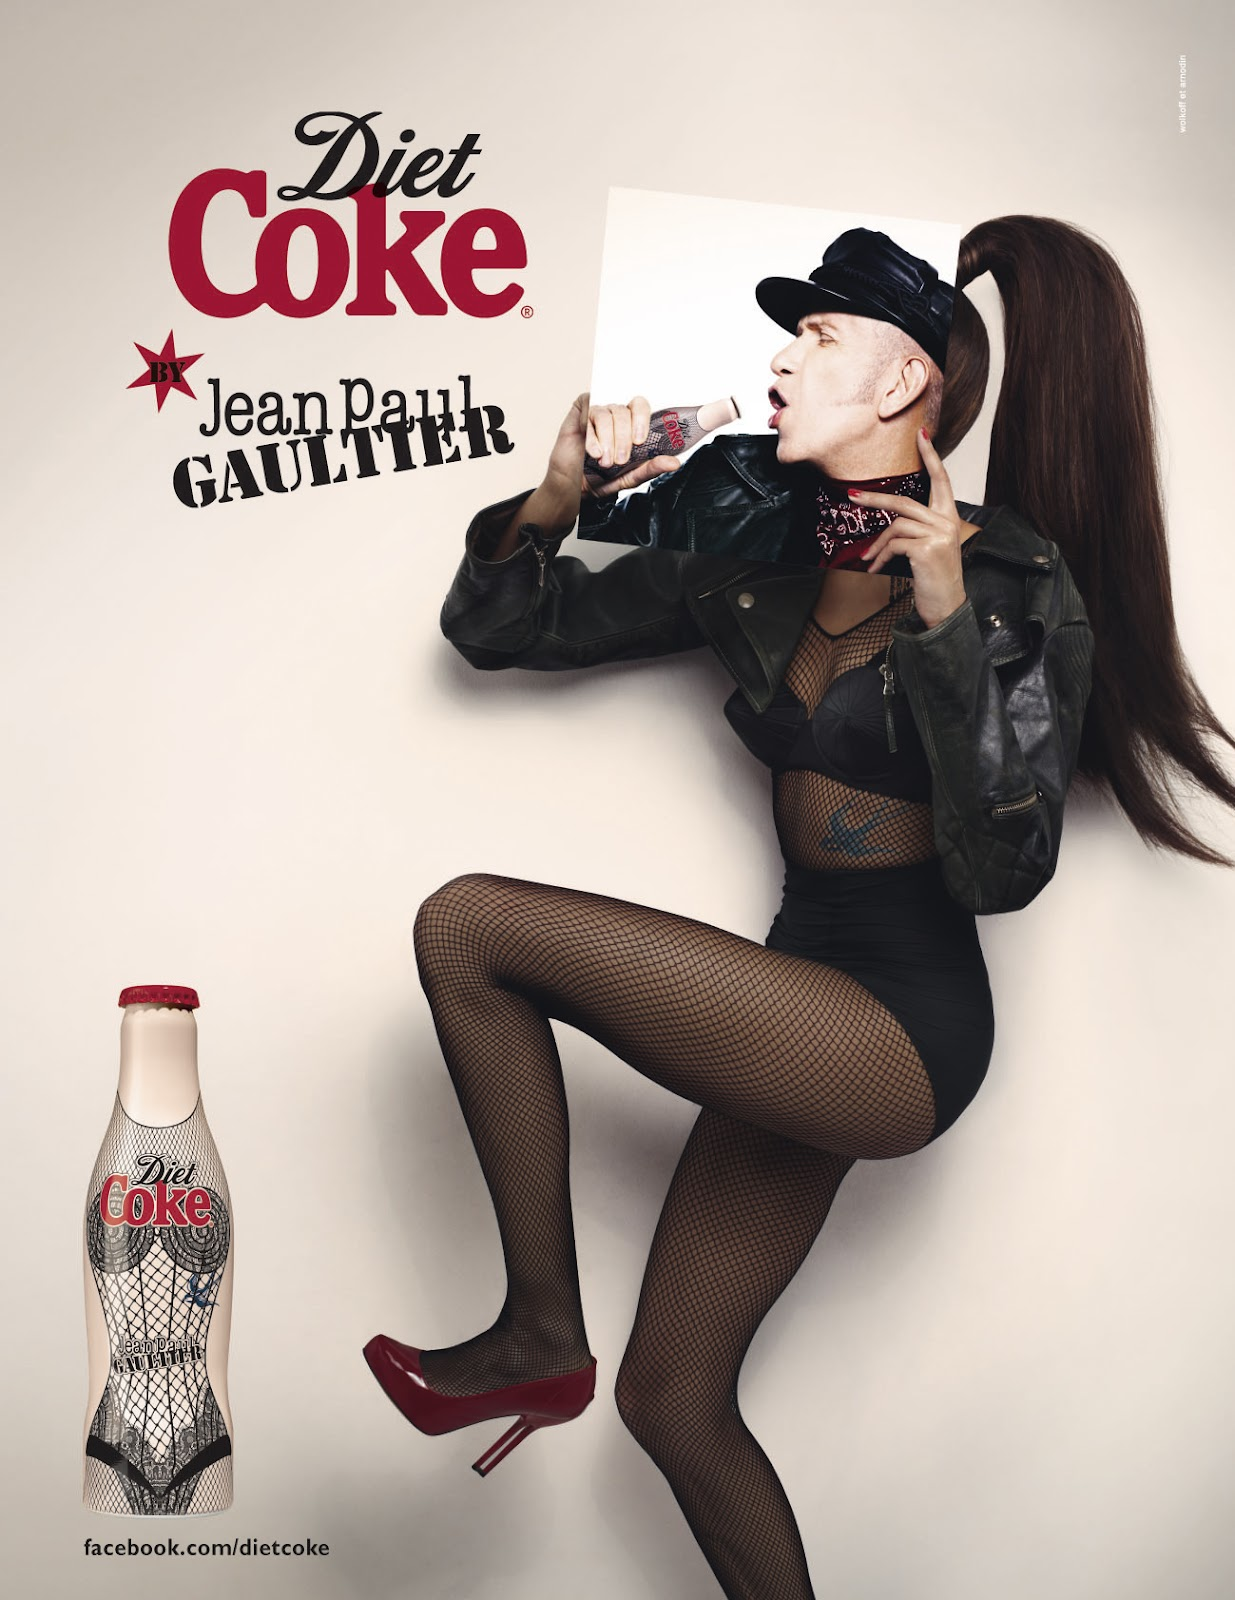 jean paul gaultier coca cola light diet coke campagna pubblicitaria